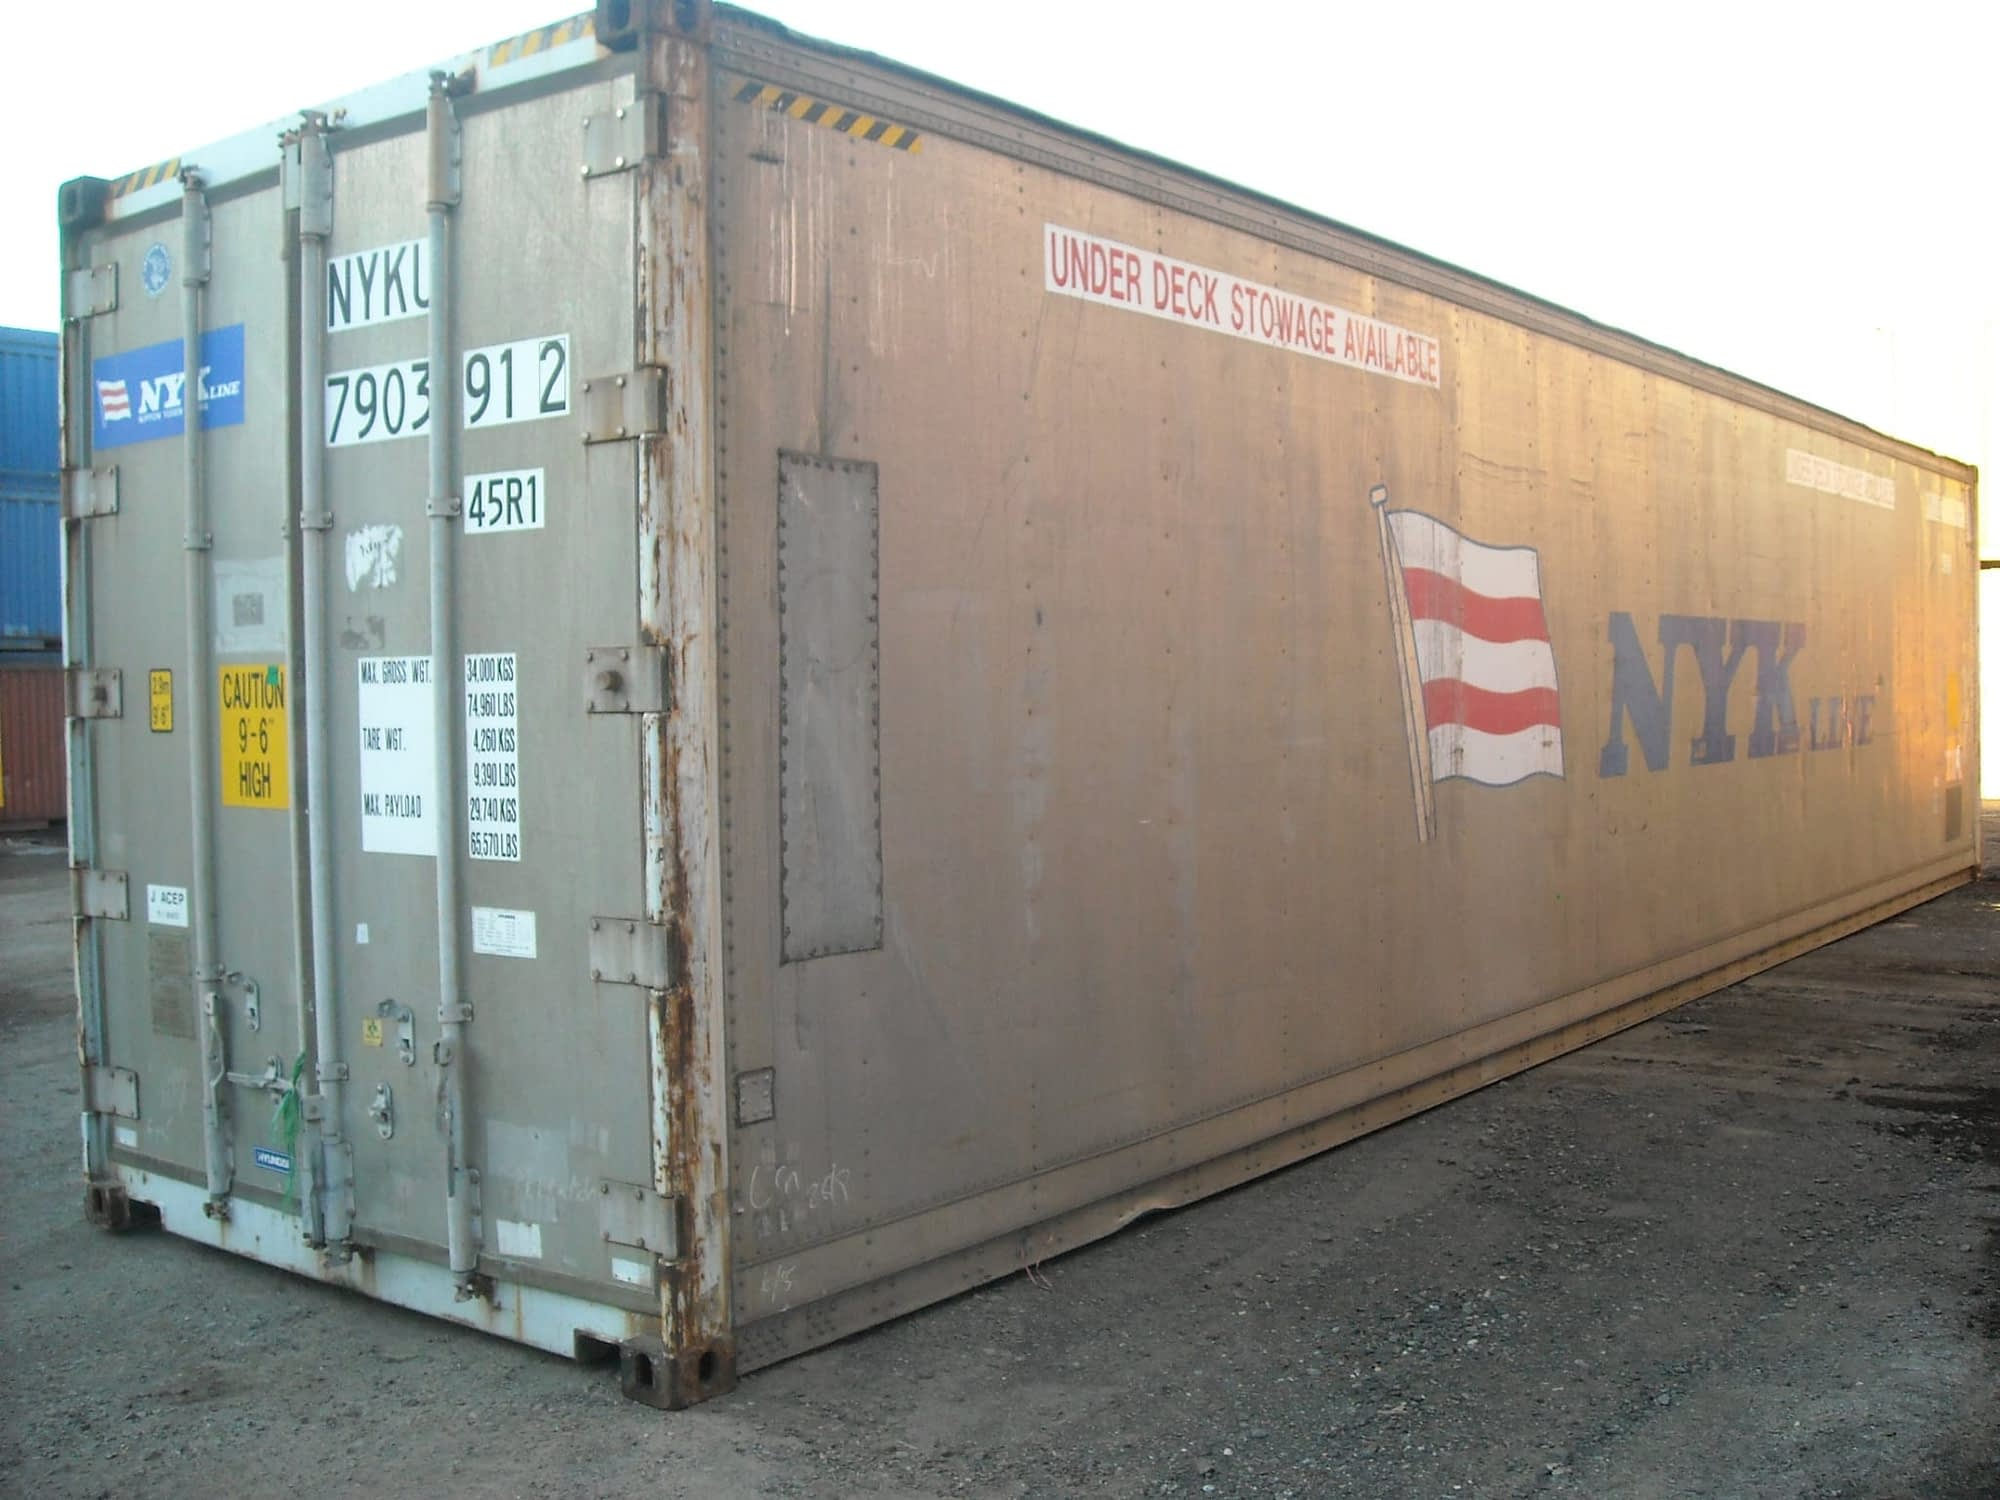 TRS sells and rents 20ft and 40ft refrigeration containers